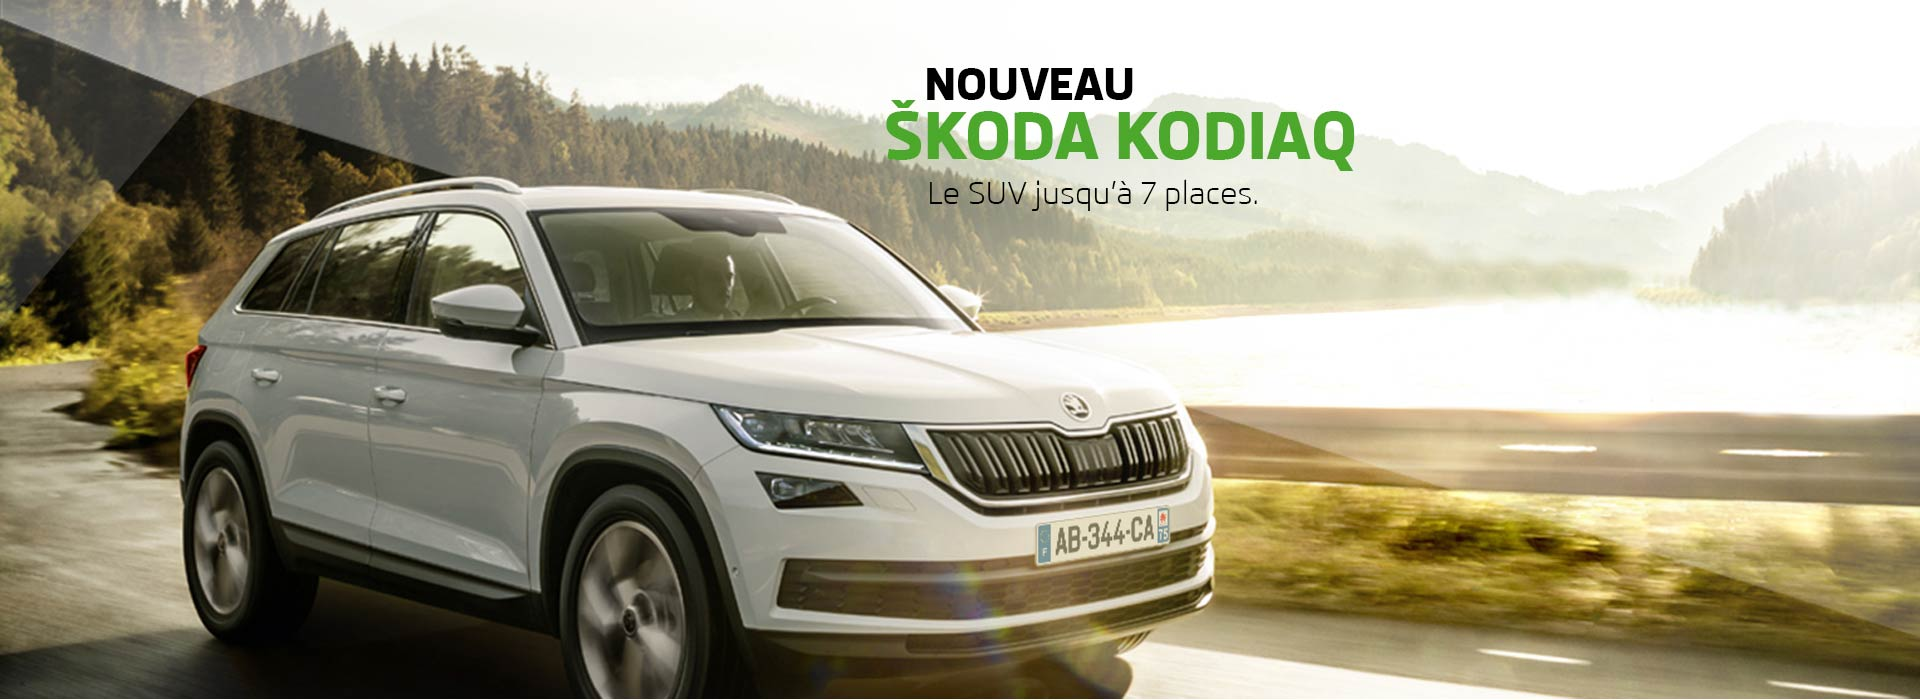 skoda rennes concessionnaire garage ille et vilaine 35. Black Bedroom Furniture Sets. Home Design Ideas